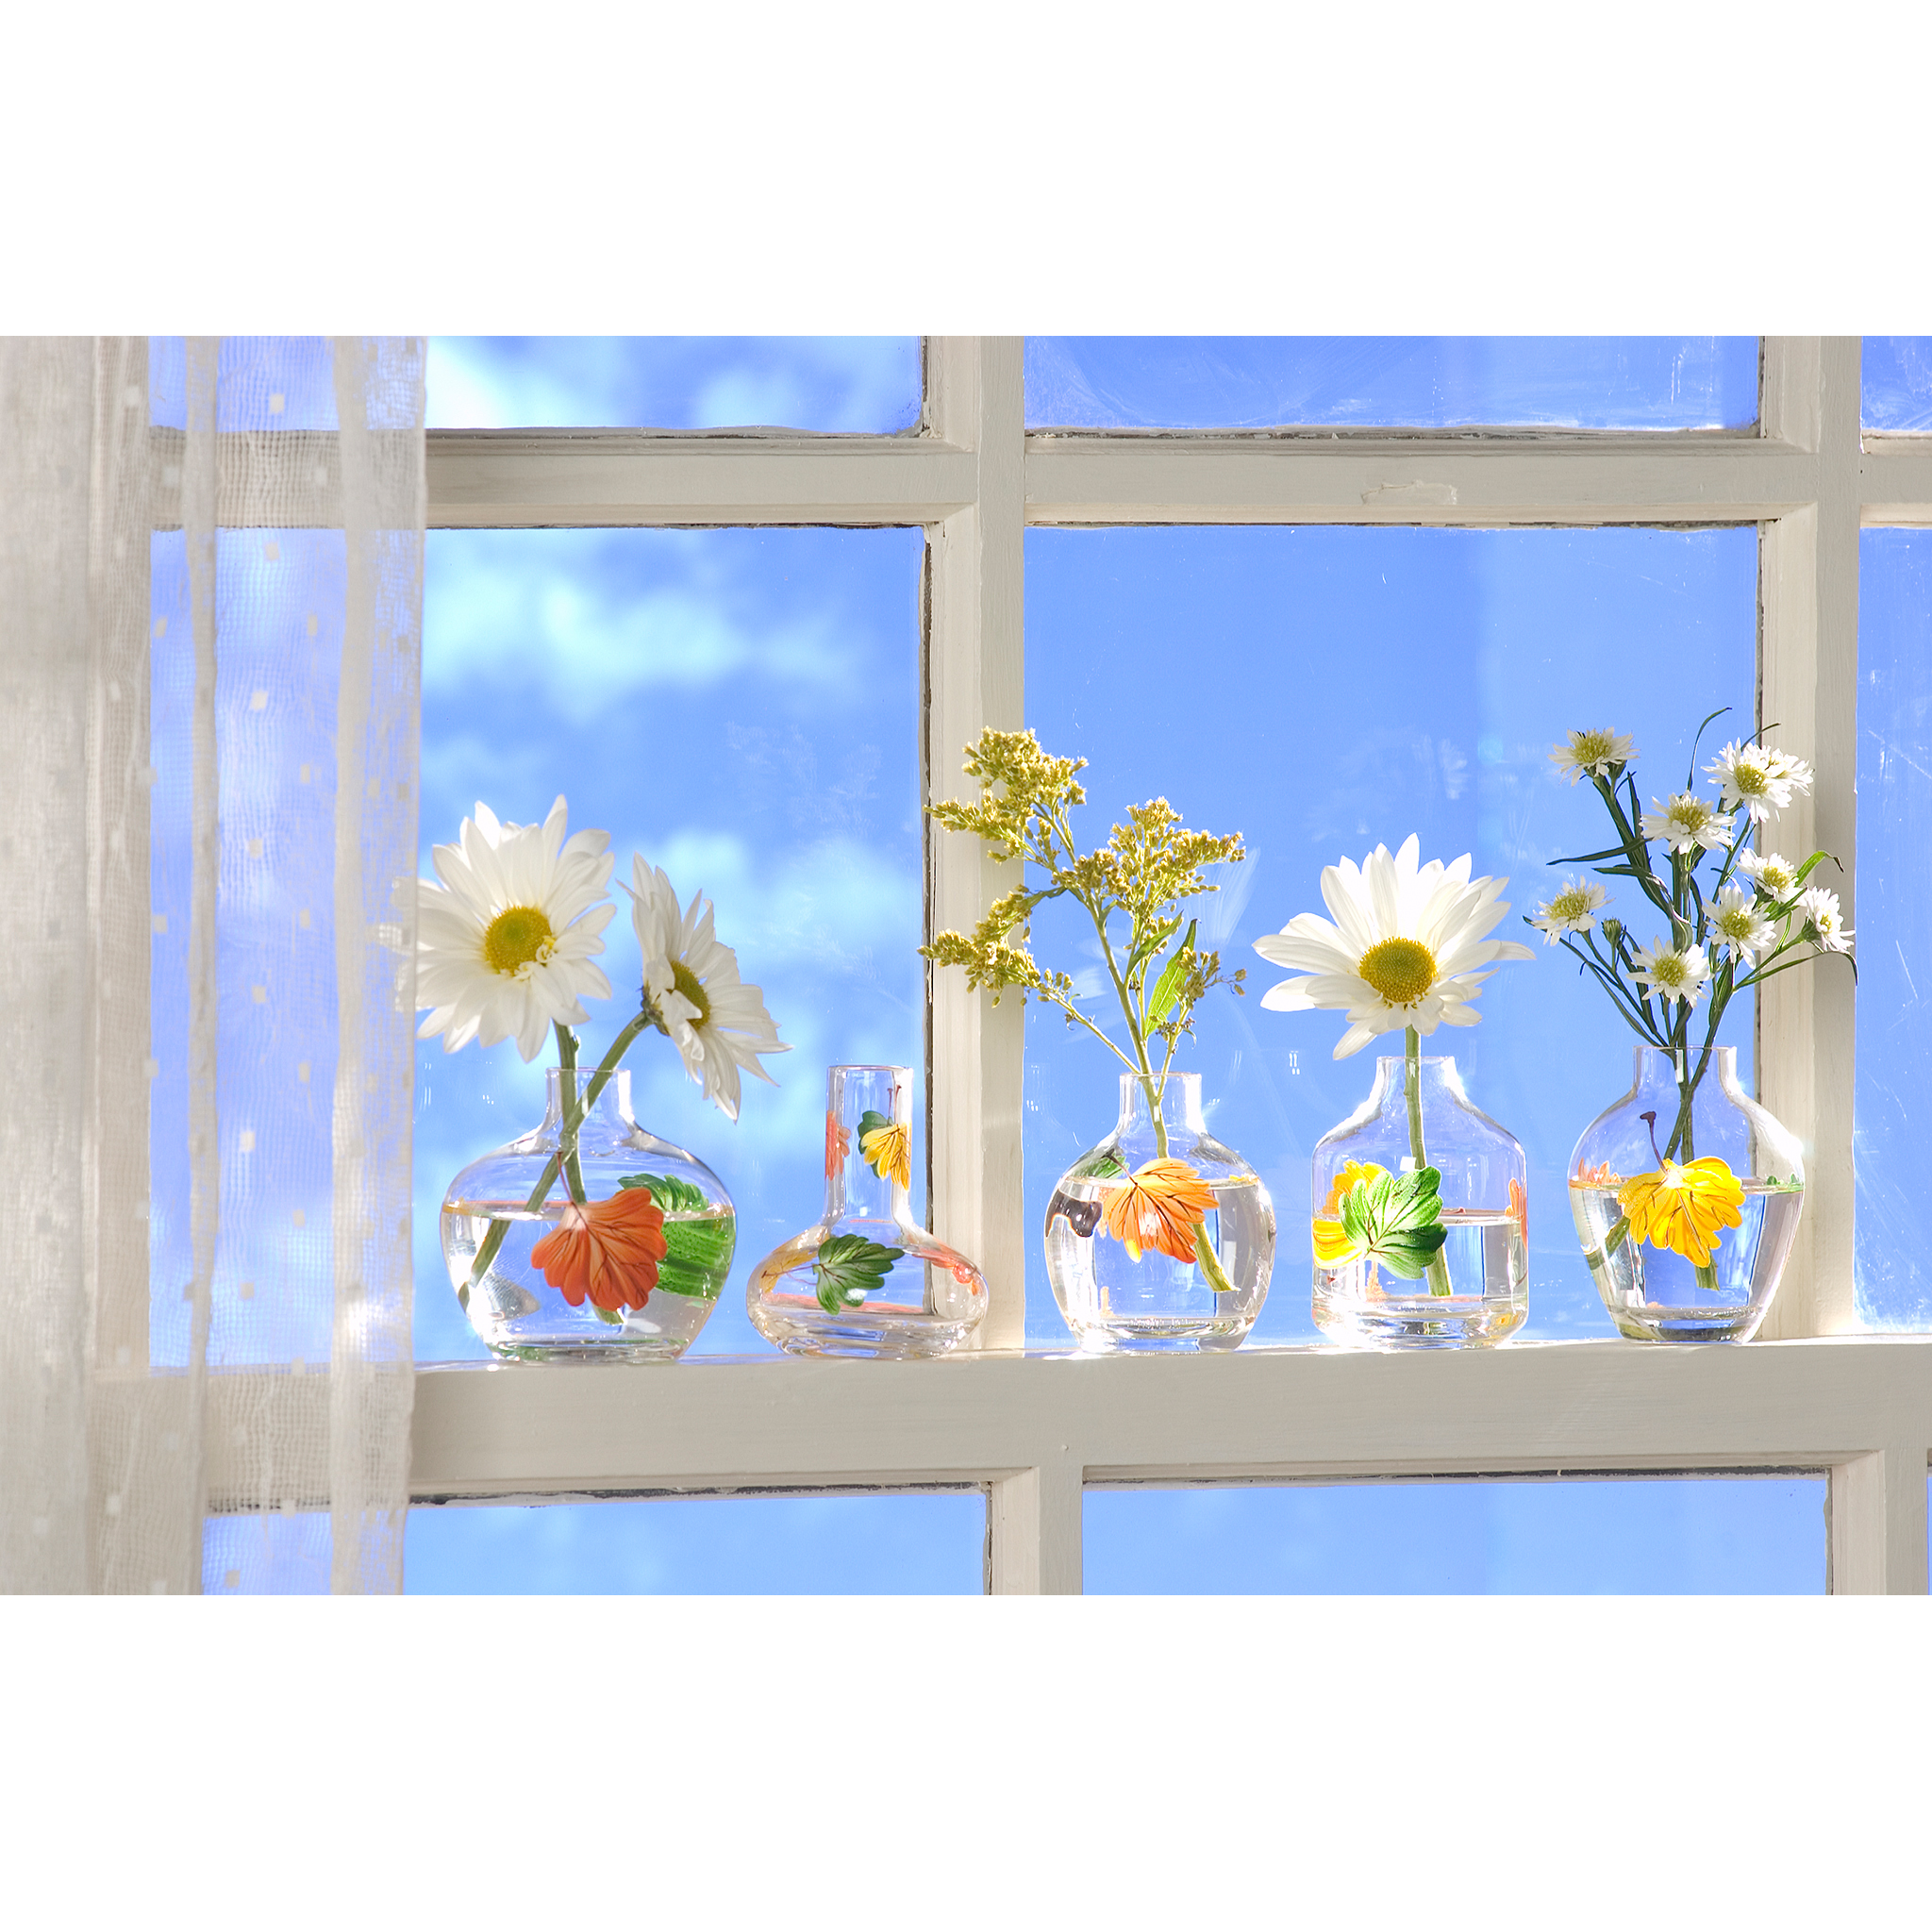 Flowers in vases on windowsill photographed for e-commerce